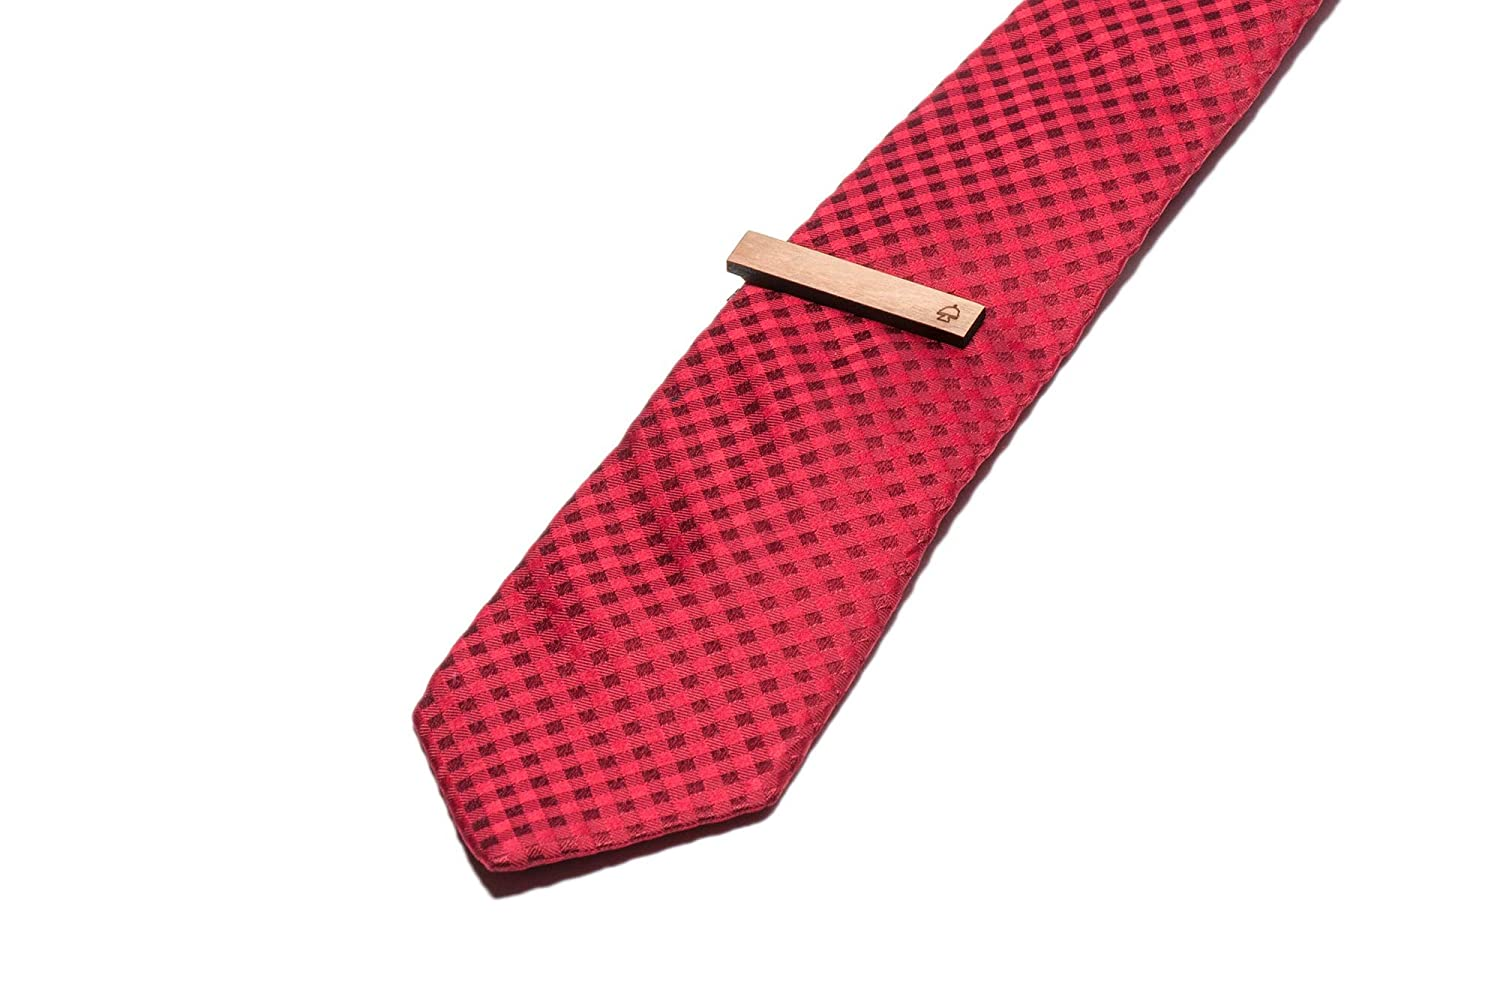 Wooden Accessories Company Wooden Tie Clips with Laser Engraved Cake Dome Design Cherry Wood Tie Bar Engraved in The USA